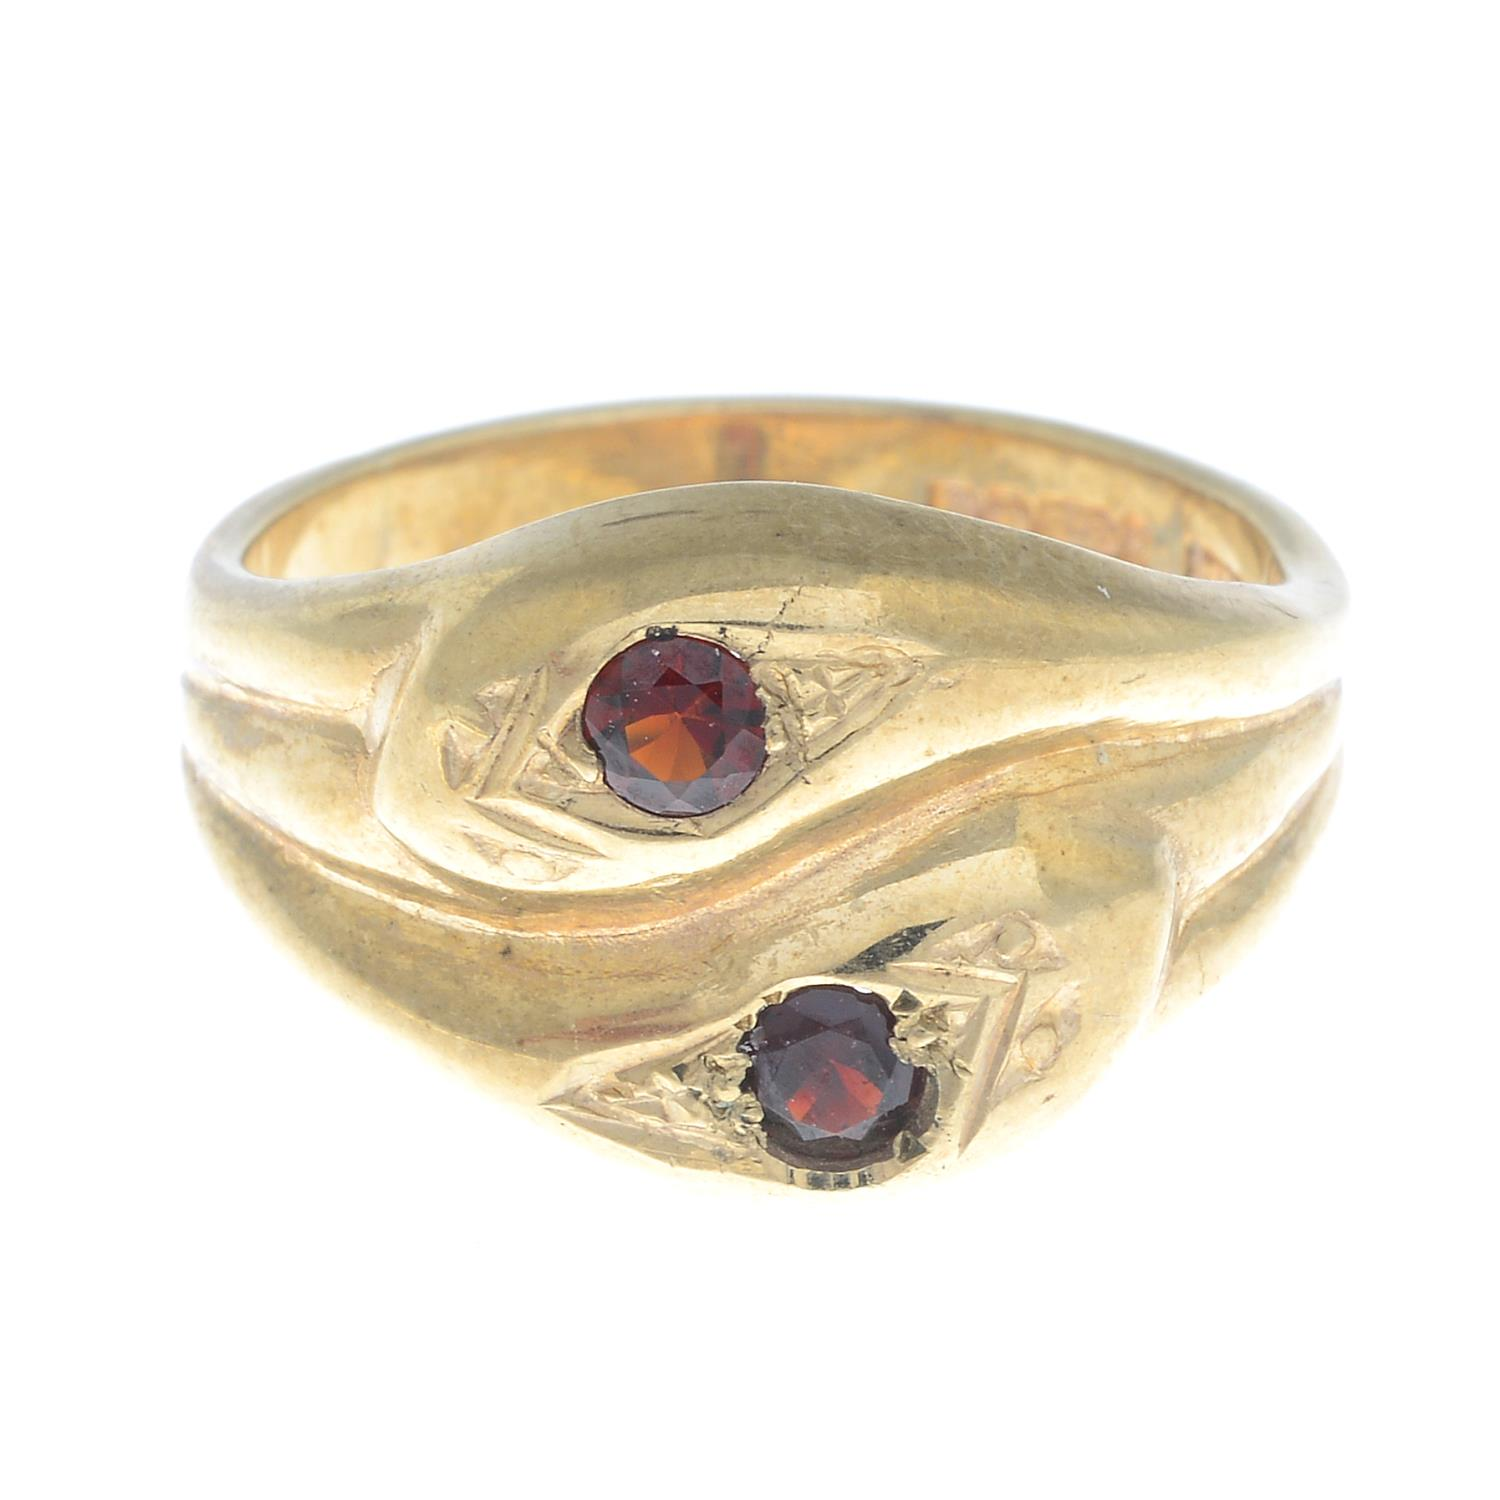 A 9ct gold snake ring, with red gem crest highlights.Hallmarks for 9ct gold.